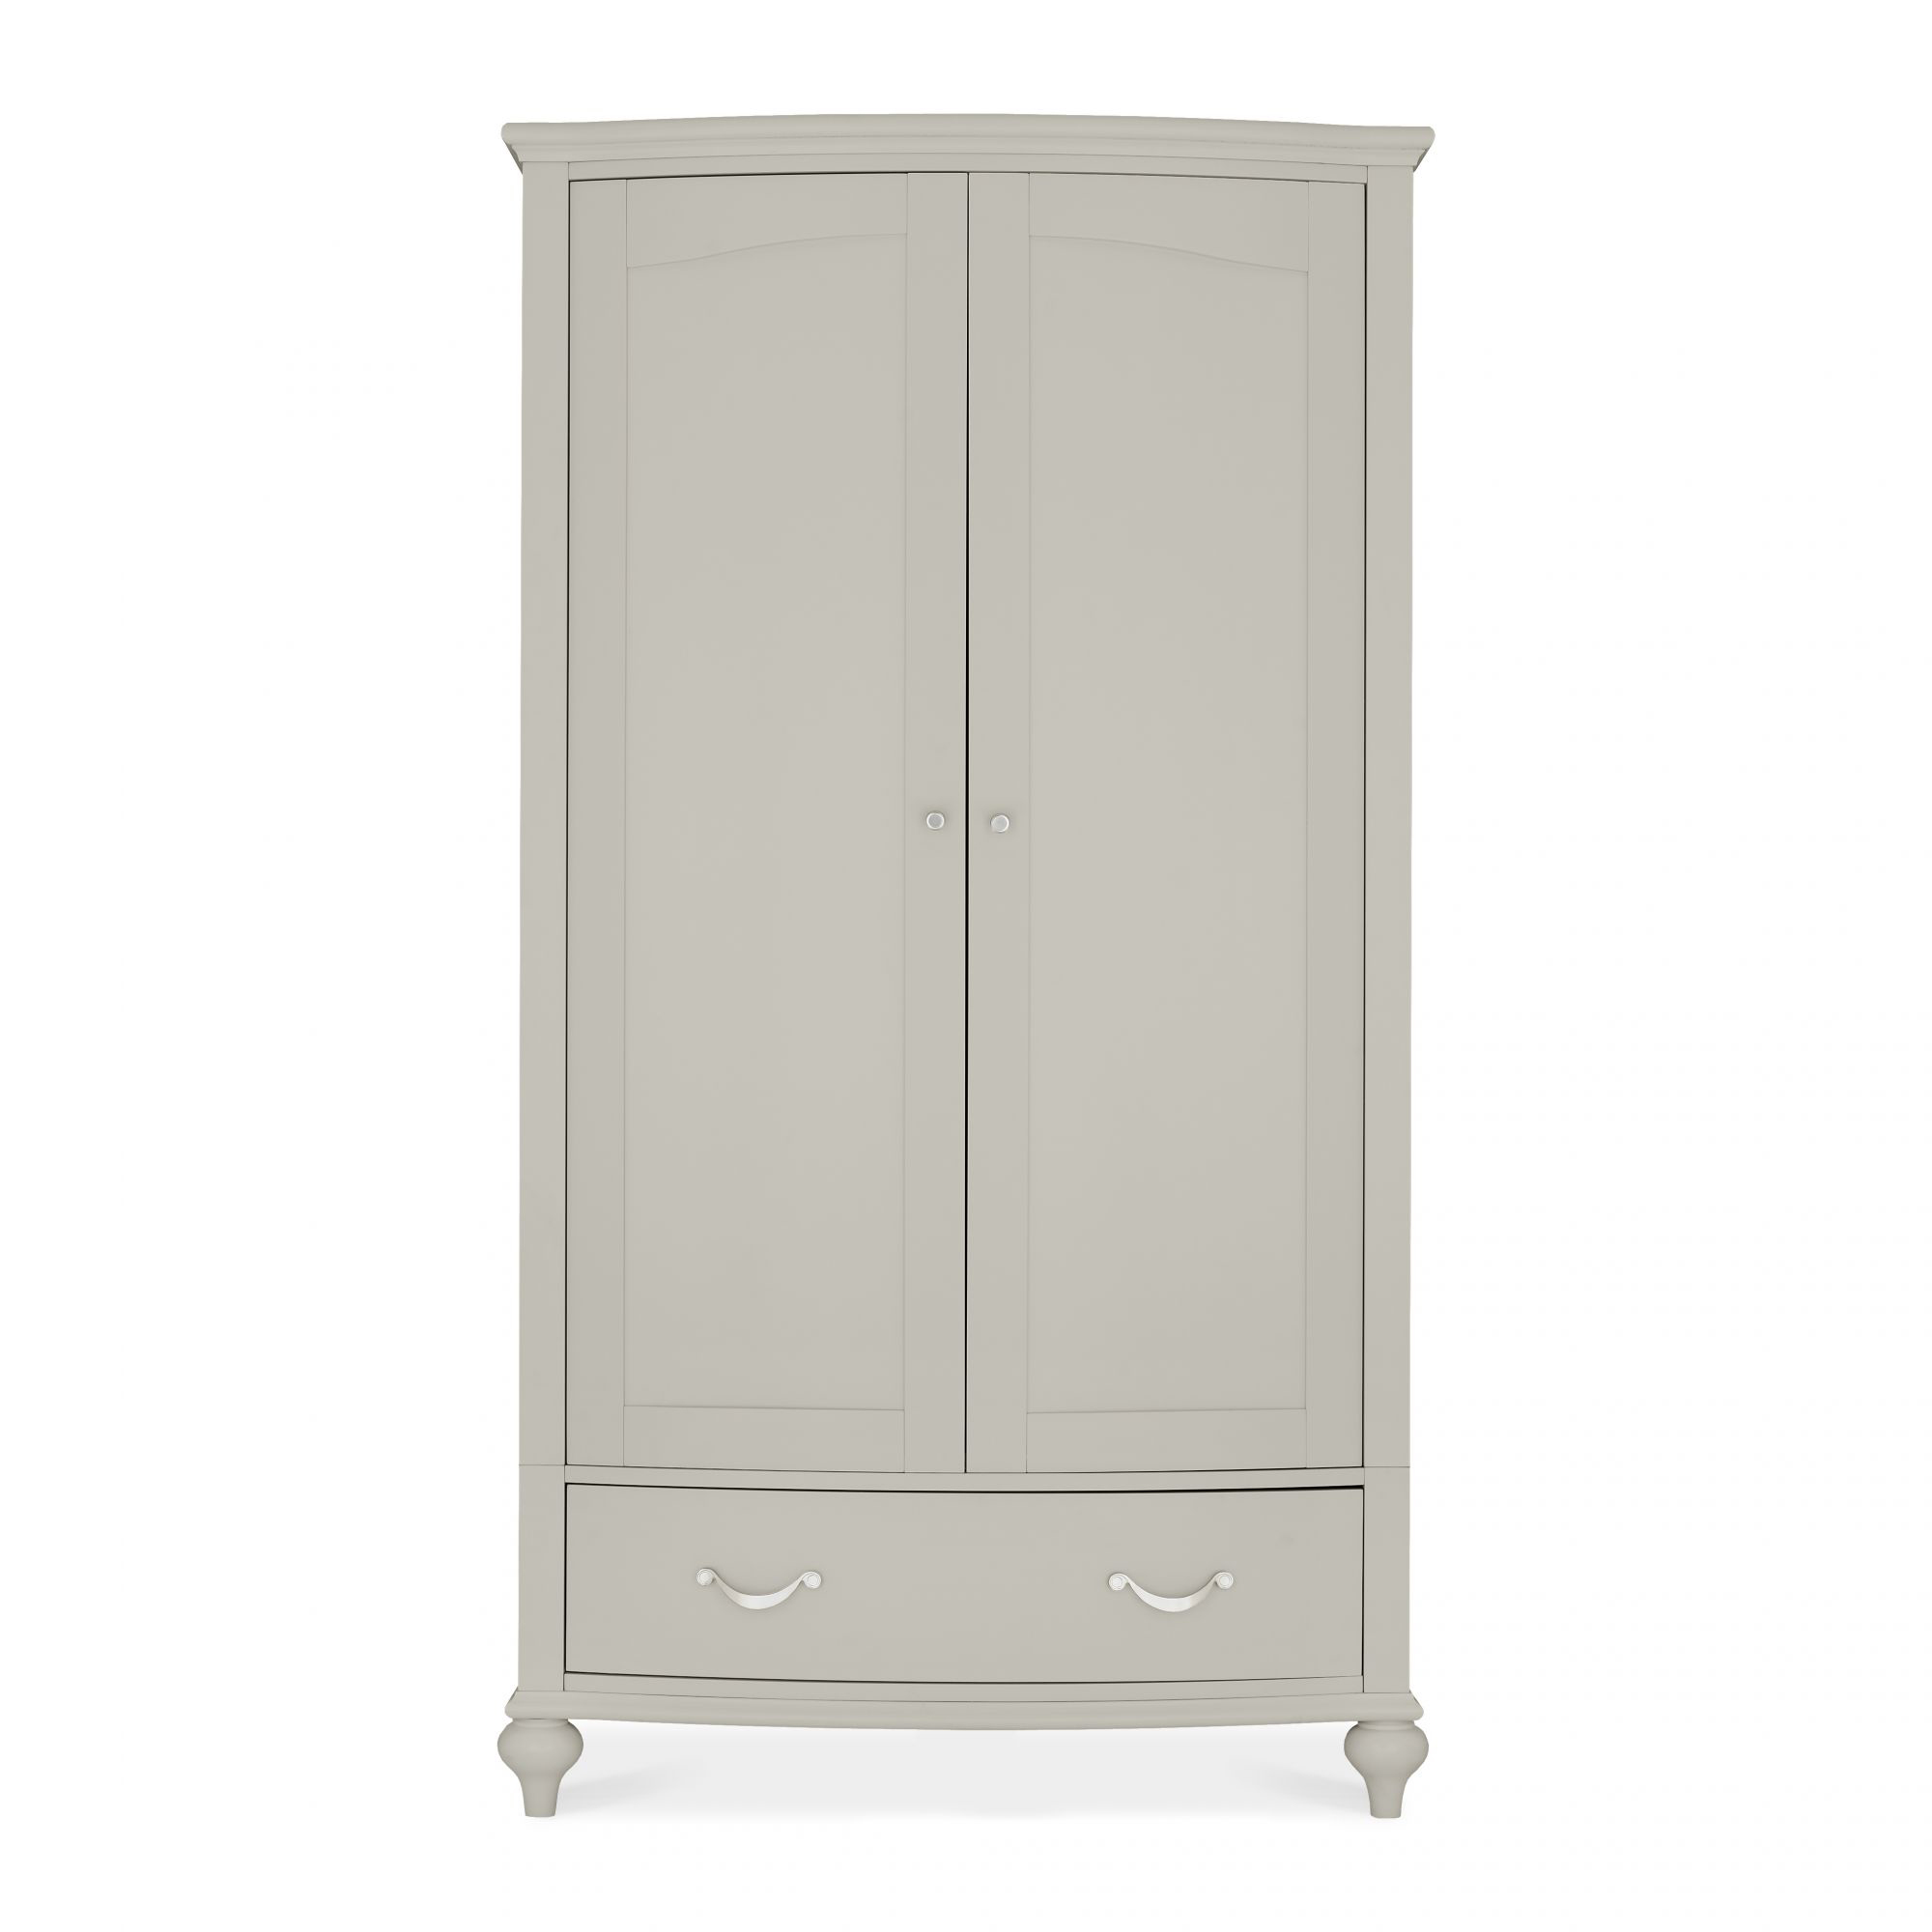 furniture of wardrobes grey ikea showing latest gallery white wardrobe storages explore visthus cm attachment photos within accent